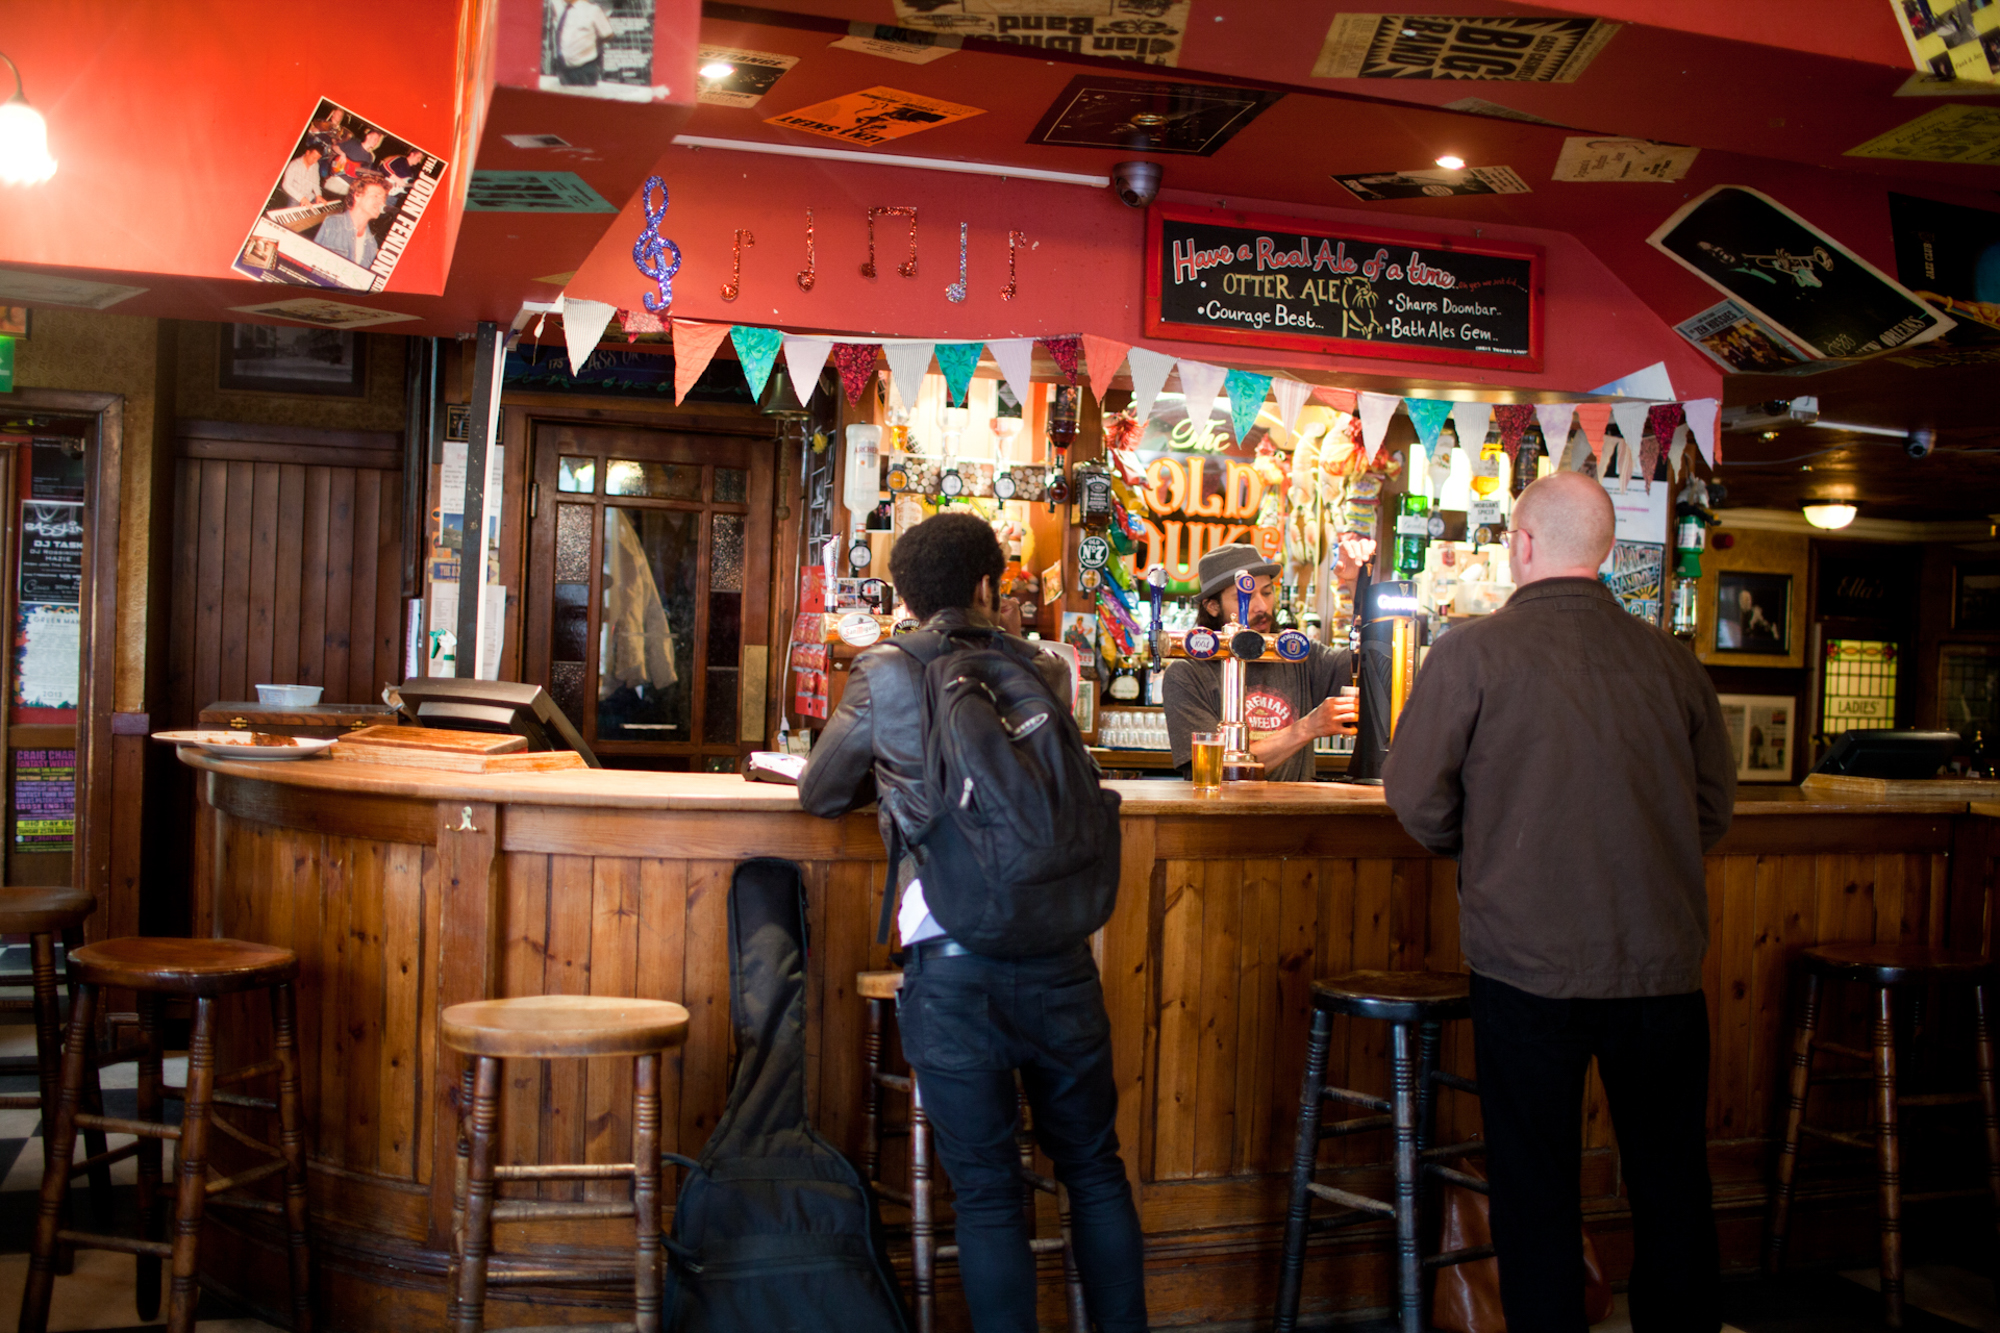 Feature about Bobby Anderson and his Band Yes Rebels. Bobby and his favourite Pub 'The old Duke' in Bristol. Photos: Evi Lemberger